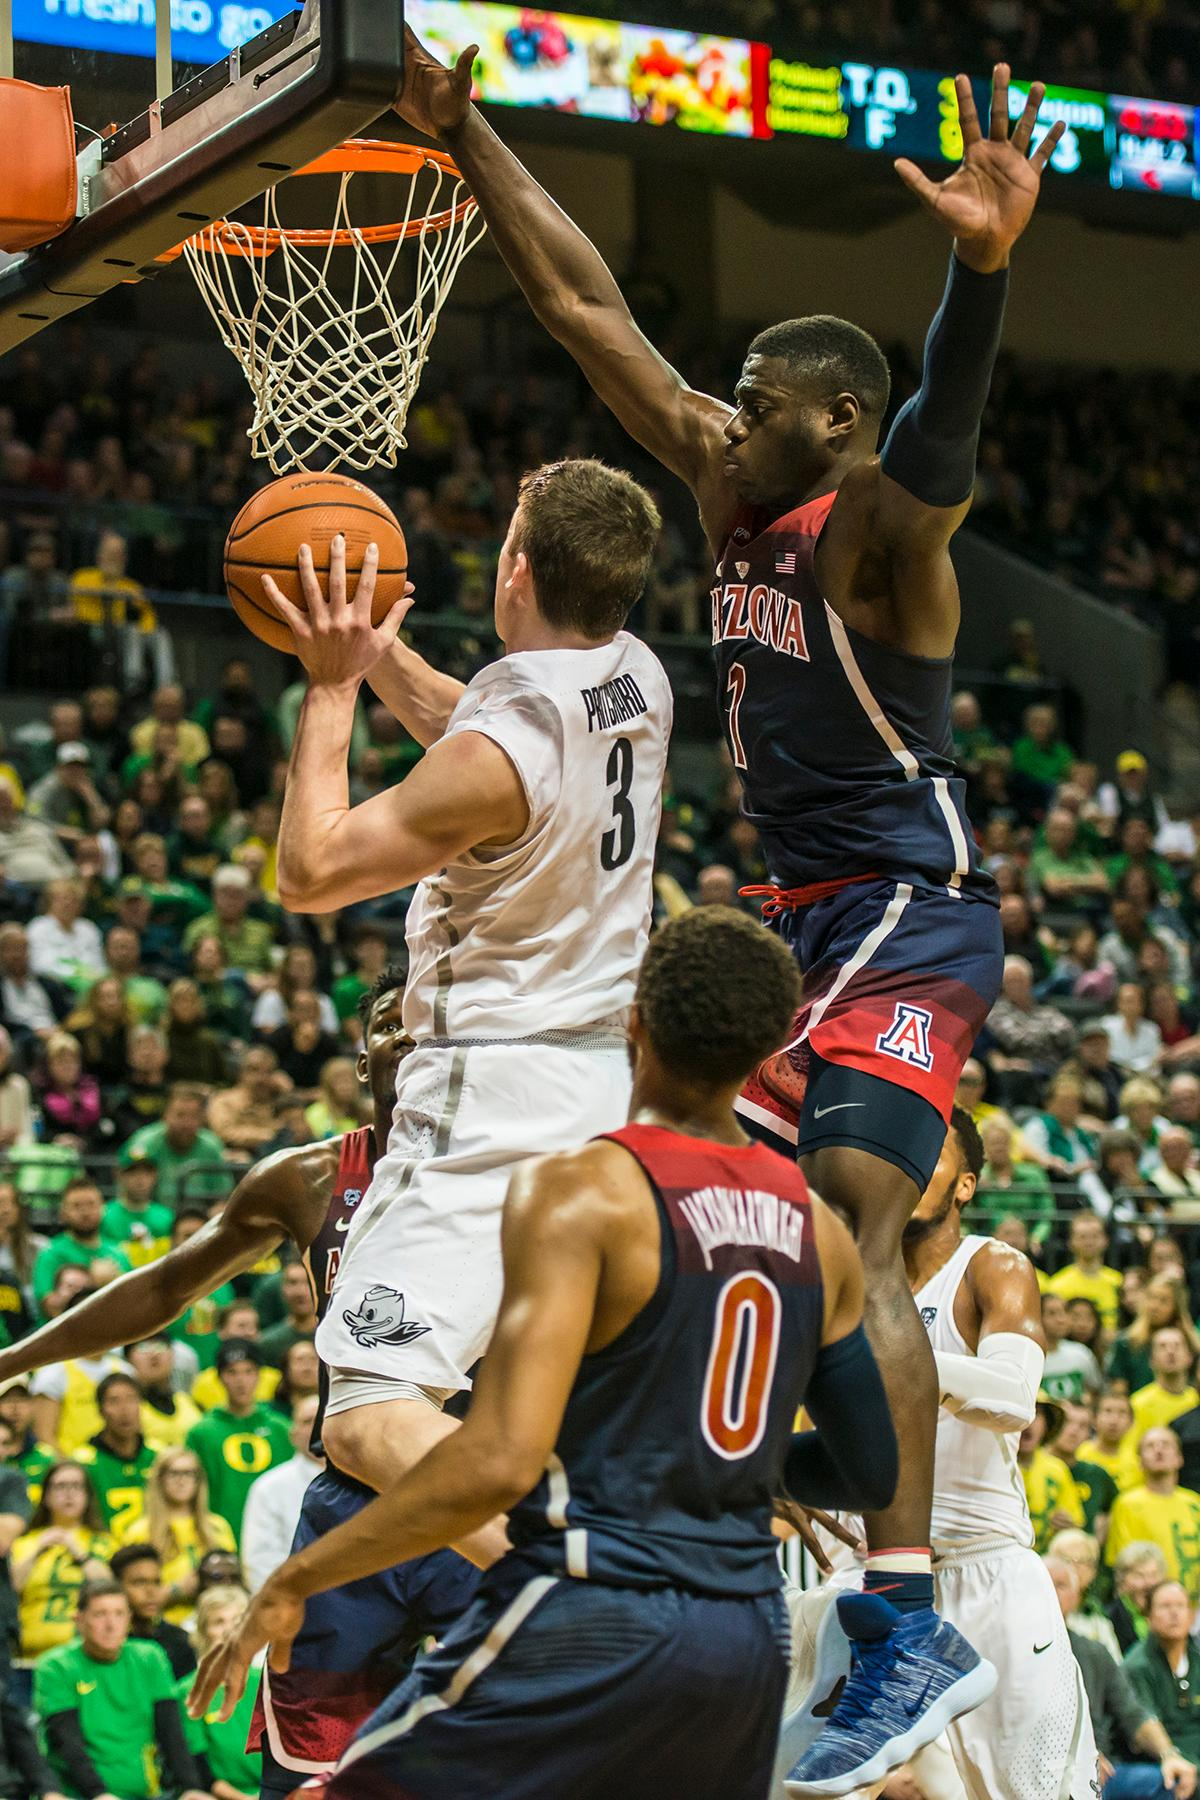 Oregon's Payton Pritchard (3) goes up for a layup against Arizona's Rawle Alkins (1) in theor matchup at Matthew Knight Arena Saturday. The Ducks upset the fourteenth ranked Wildcats 98-93 in a stunning overtime win in front of a packed house of over 12,000 fans for their final home game to improve to a 19-10 (9-7 PAC-12) record on the season. Oregon will finish out regular season play on the road in Washington next week against Washington State on Thursday, then Washington on the following Saturday. (Photo by Colin Houck)